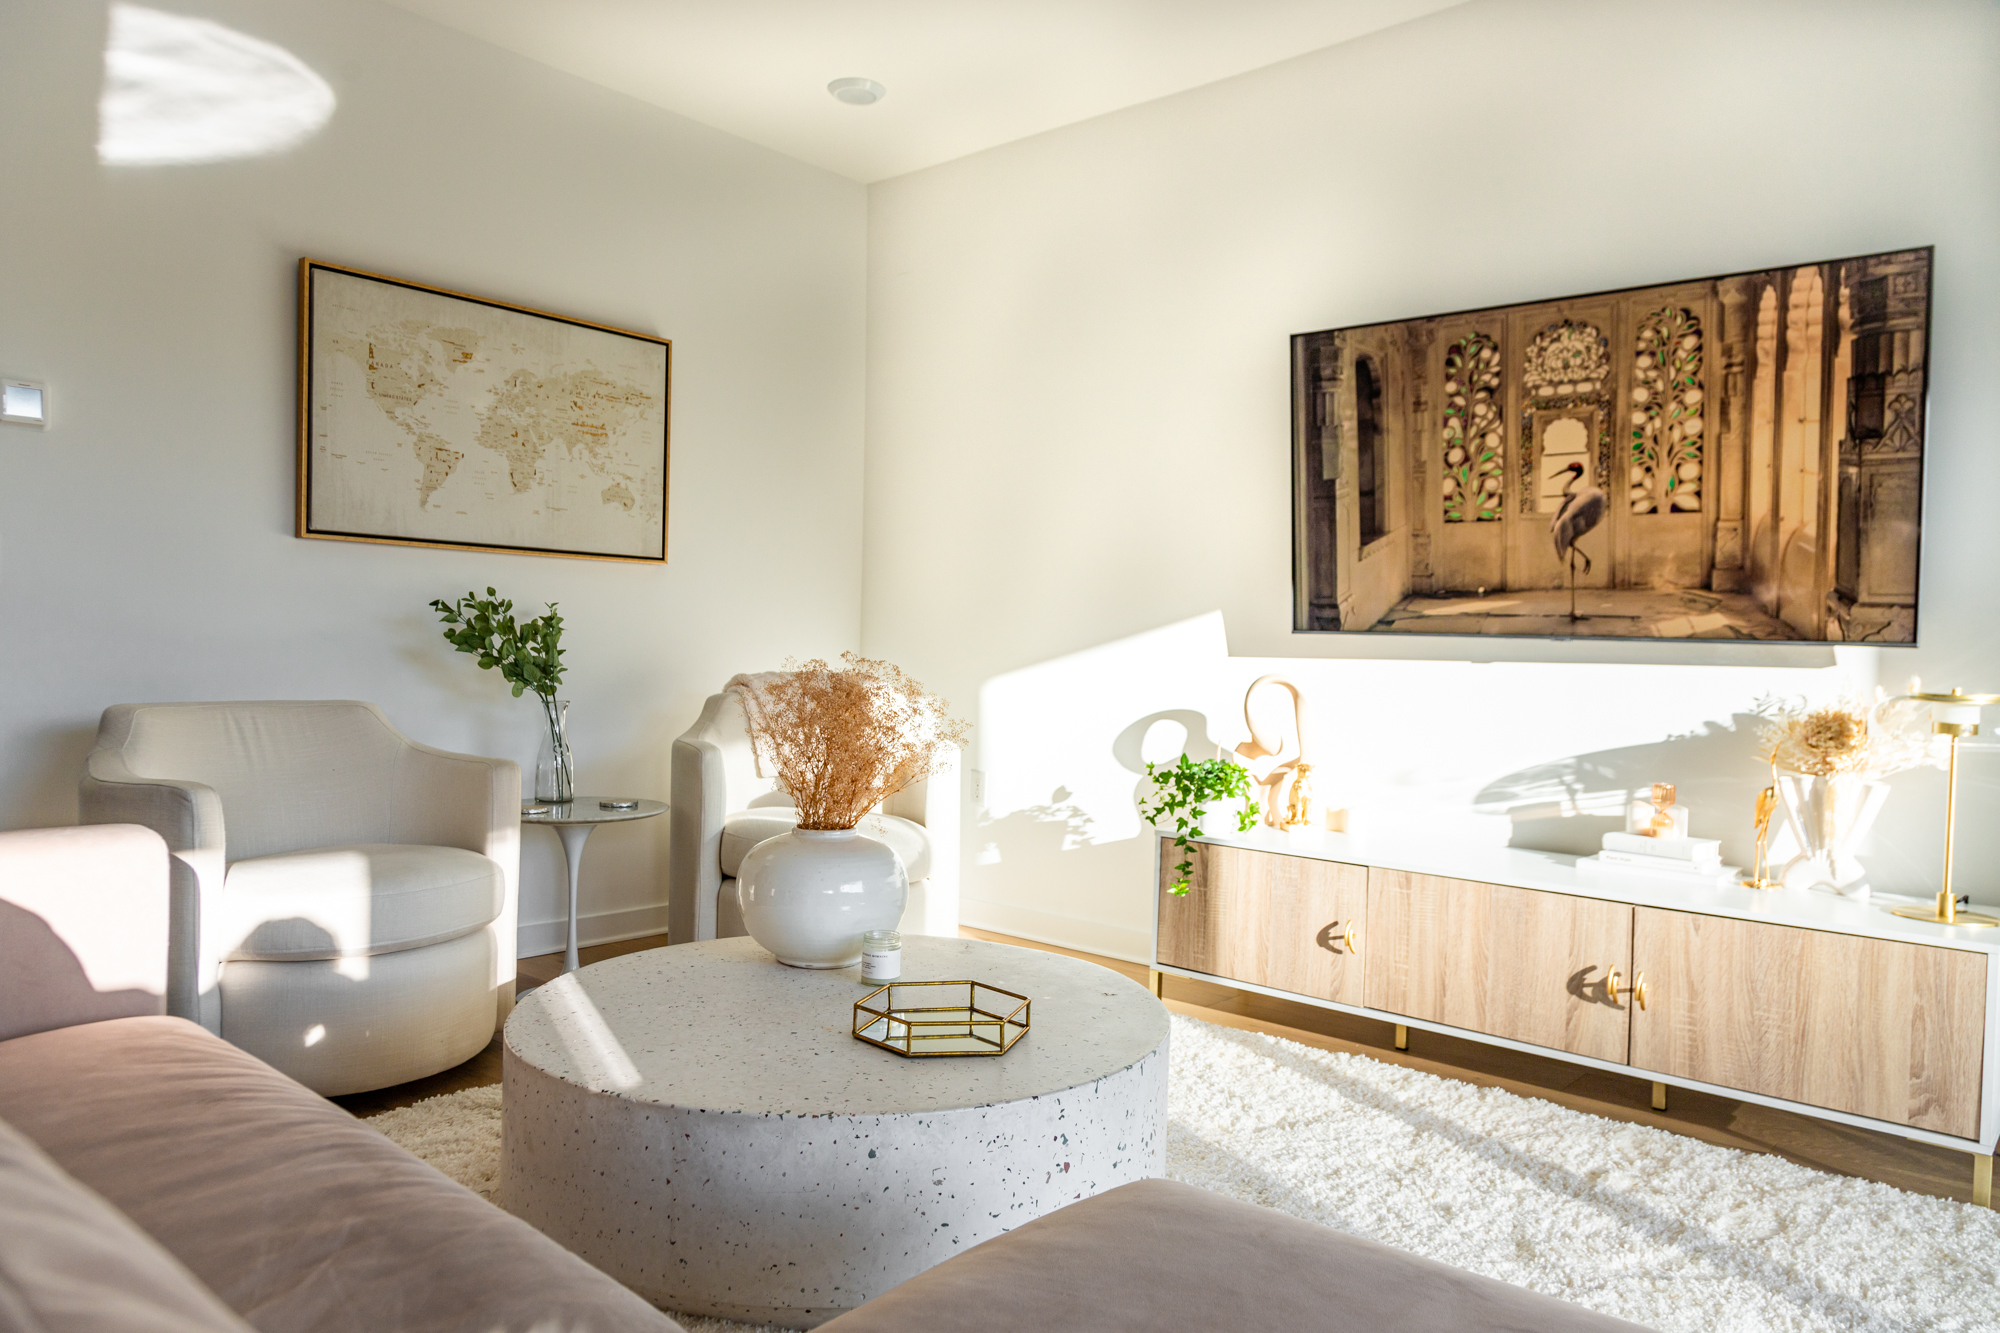 transitional style home decor, blush pink couch, rove concepts, frontgate, terrazzo coffee table, gold accents, best home decor stores